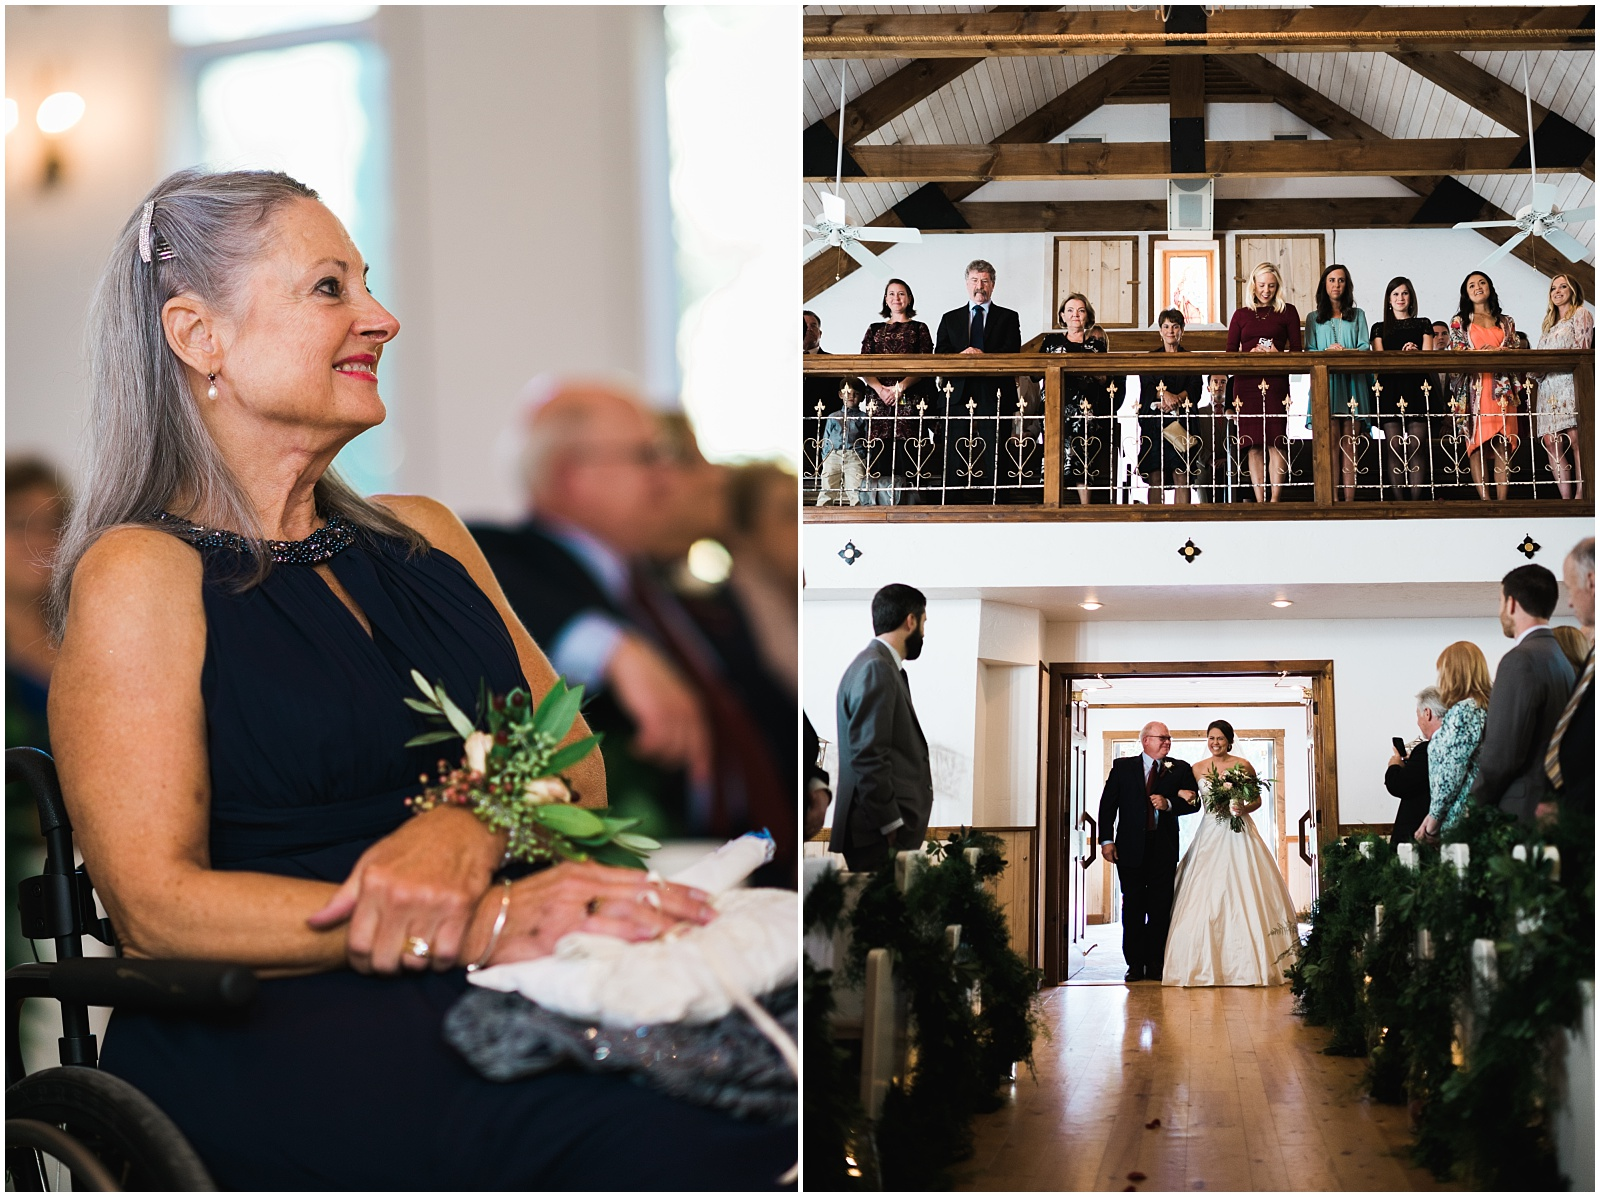 Collage of walking down aisle